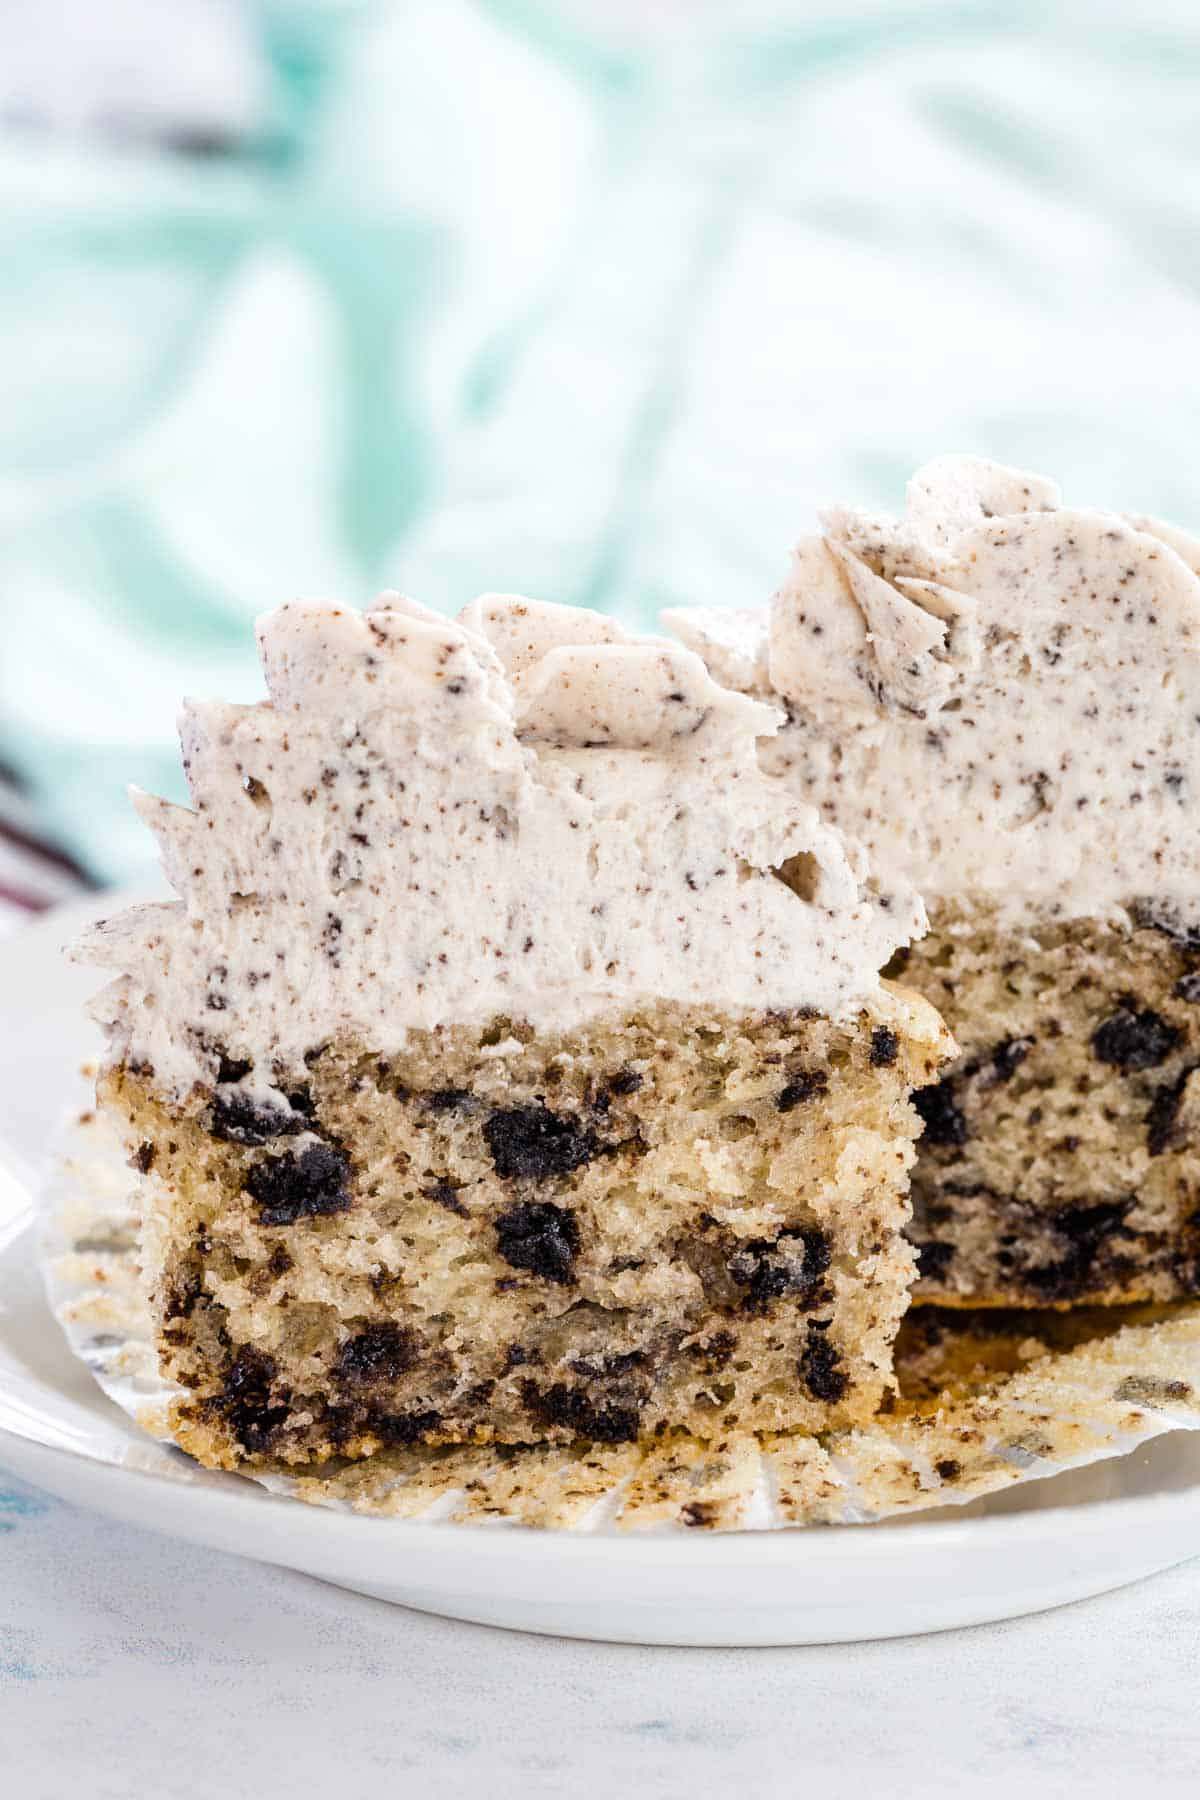 a frosted cupcake cut in half to see the oreo bits and pieces inside